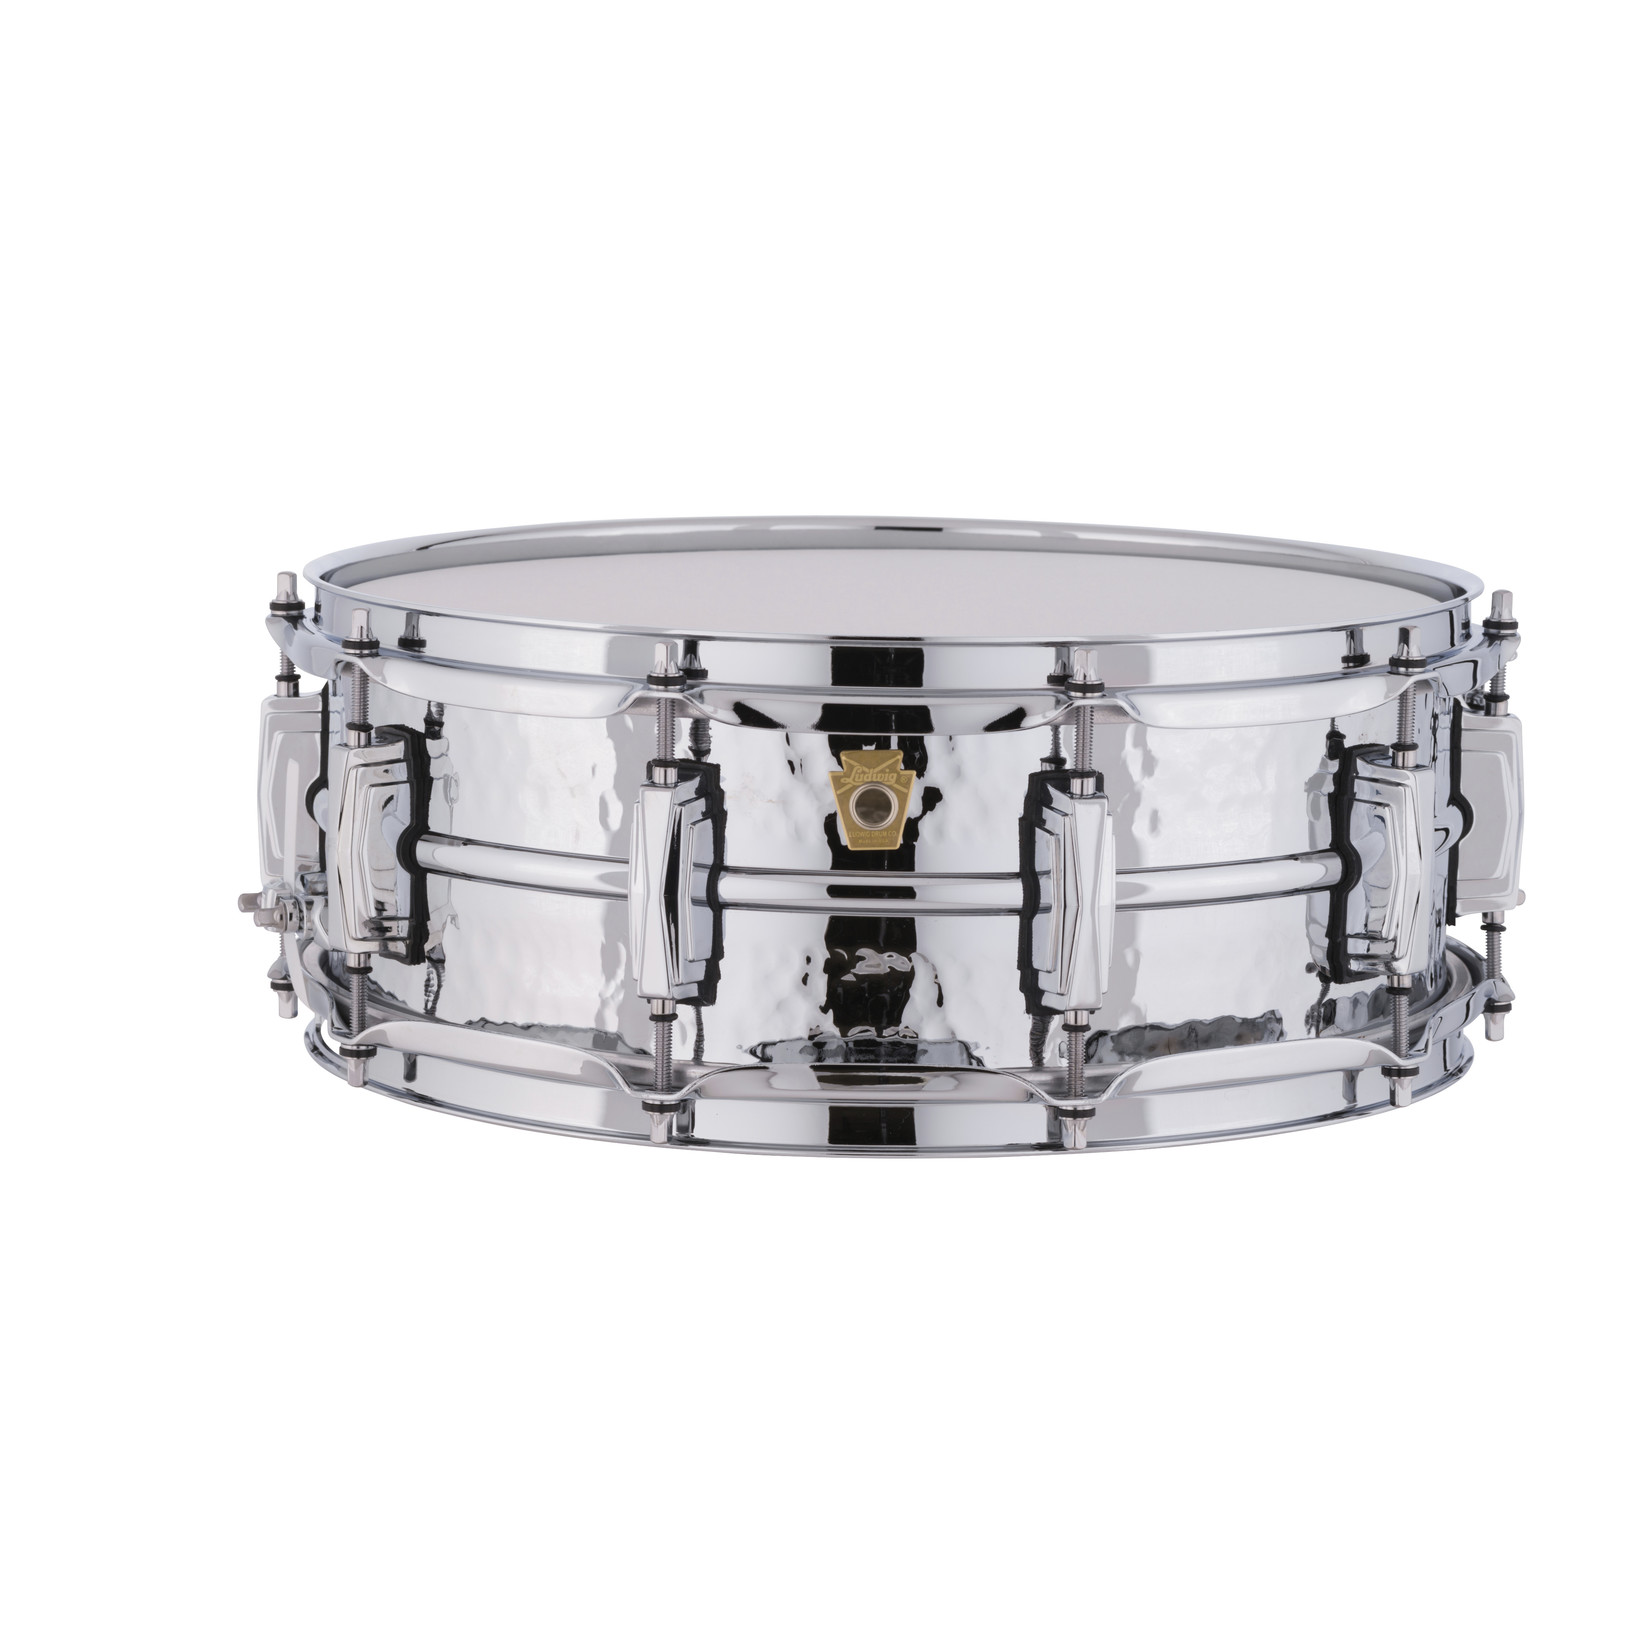 Ludwig Ludwig 5X14 Supraphonic Snare Drum / Imperial Lugs / Hammered Shell